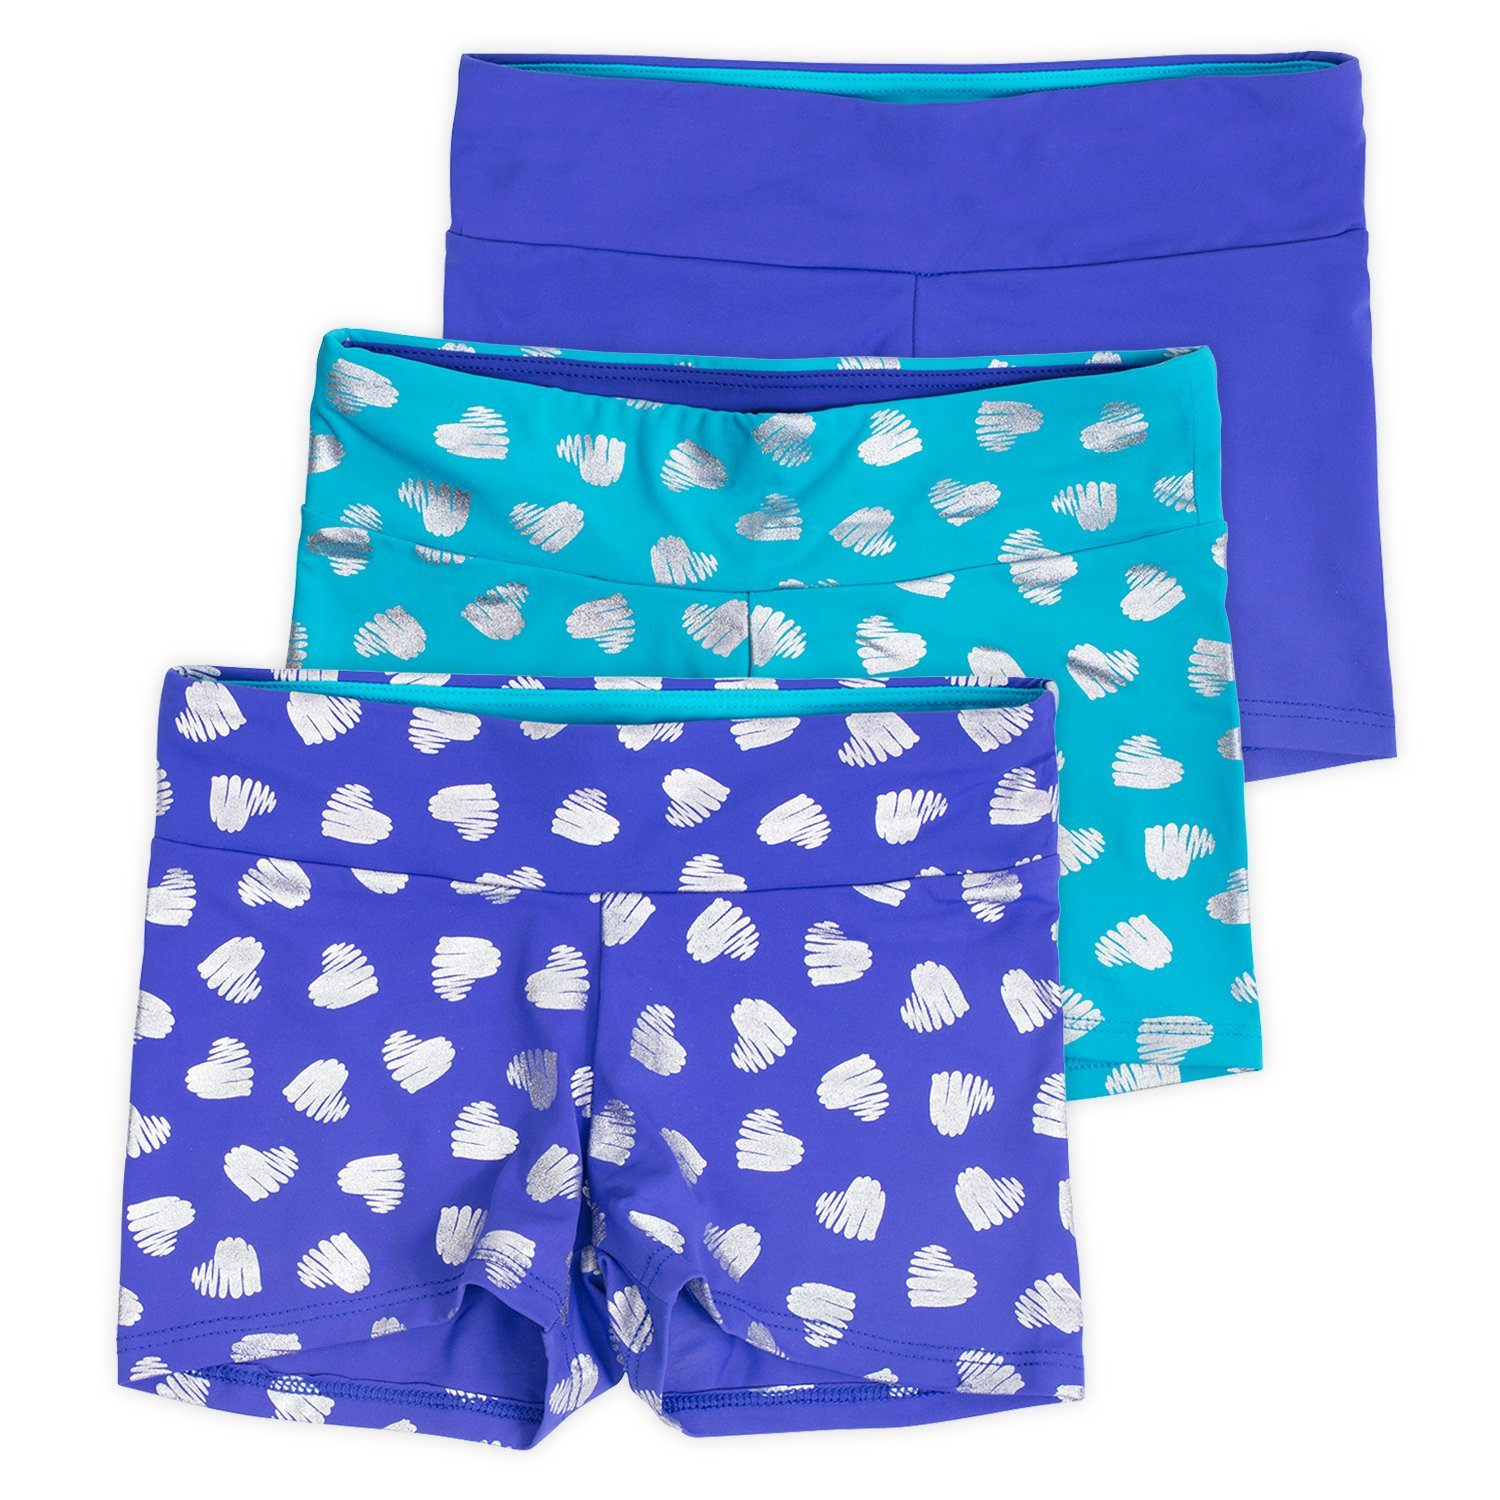 Layla Girls Dance Shorts, Gymnastics & Dancewear, 3-Pack, Tanzanite, 6